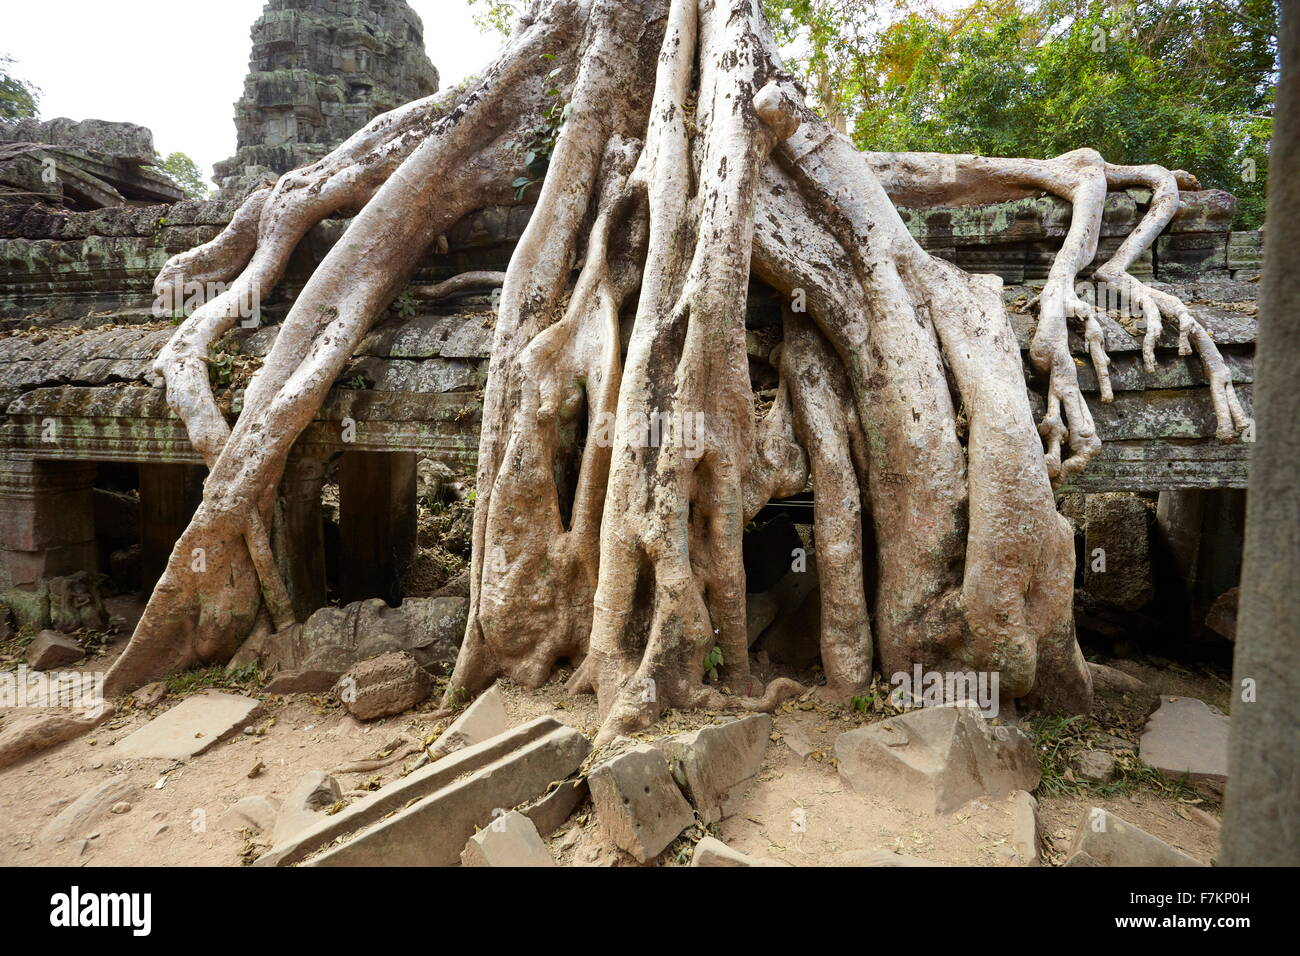 Roots of a giant tree overgrowing ruins of Ta Prohm Temple, Angkor, Cambodia, Asia - Stock Image